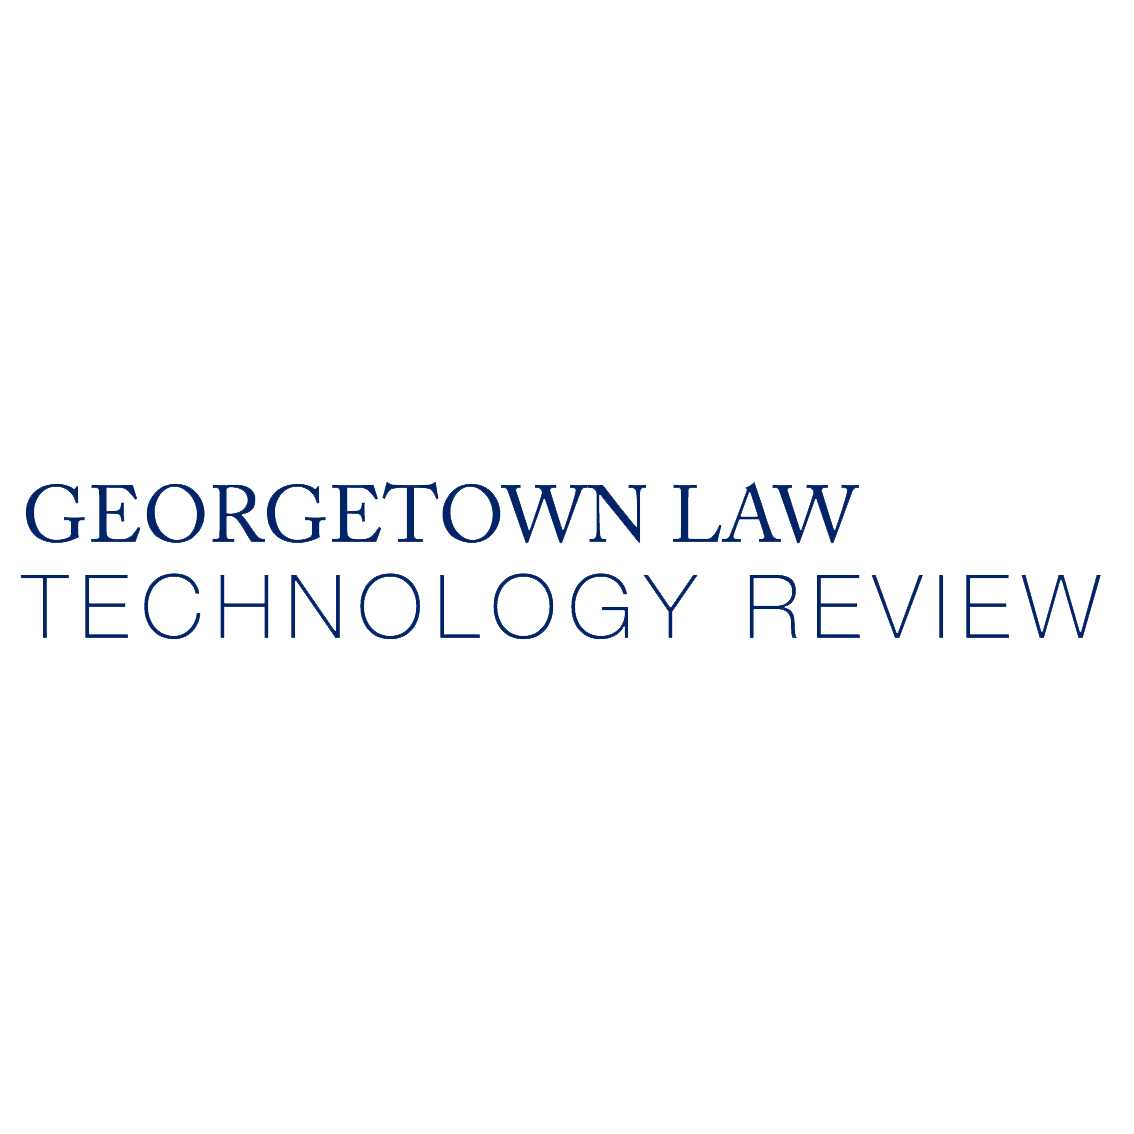 Sources of Tech Platform Power - GEORGETOWN LAW TECHNOLOGY REVIEW